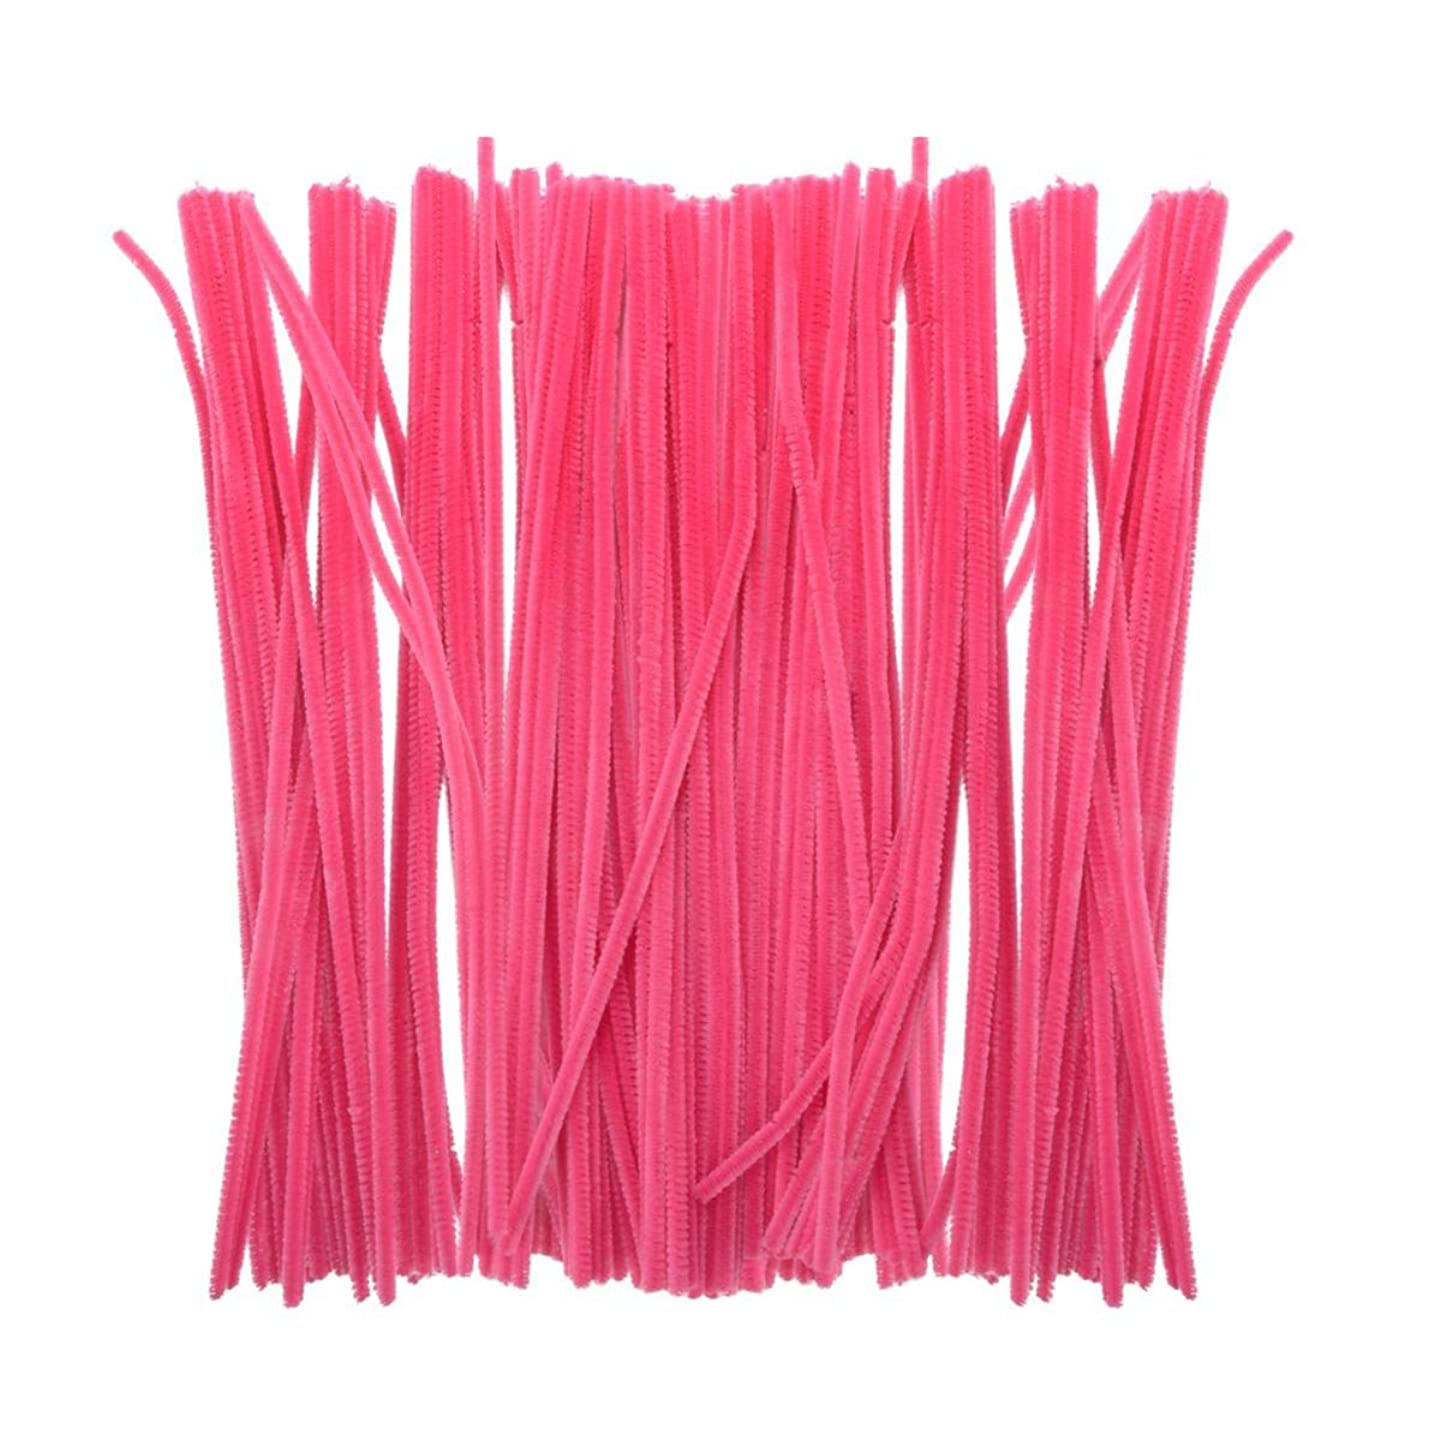 Saim 200Pcs Rose Pink Colored Pipe Cleaners Chenille Stems 12